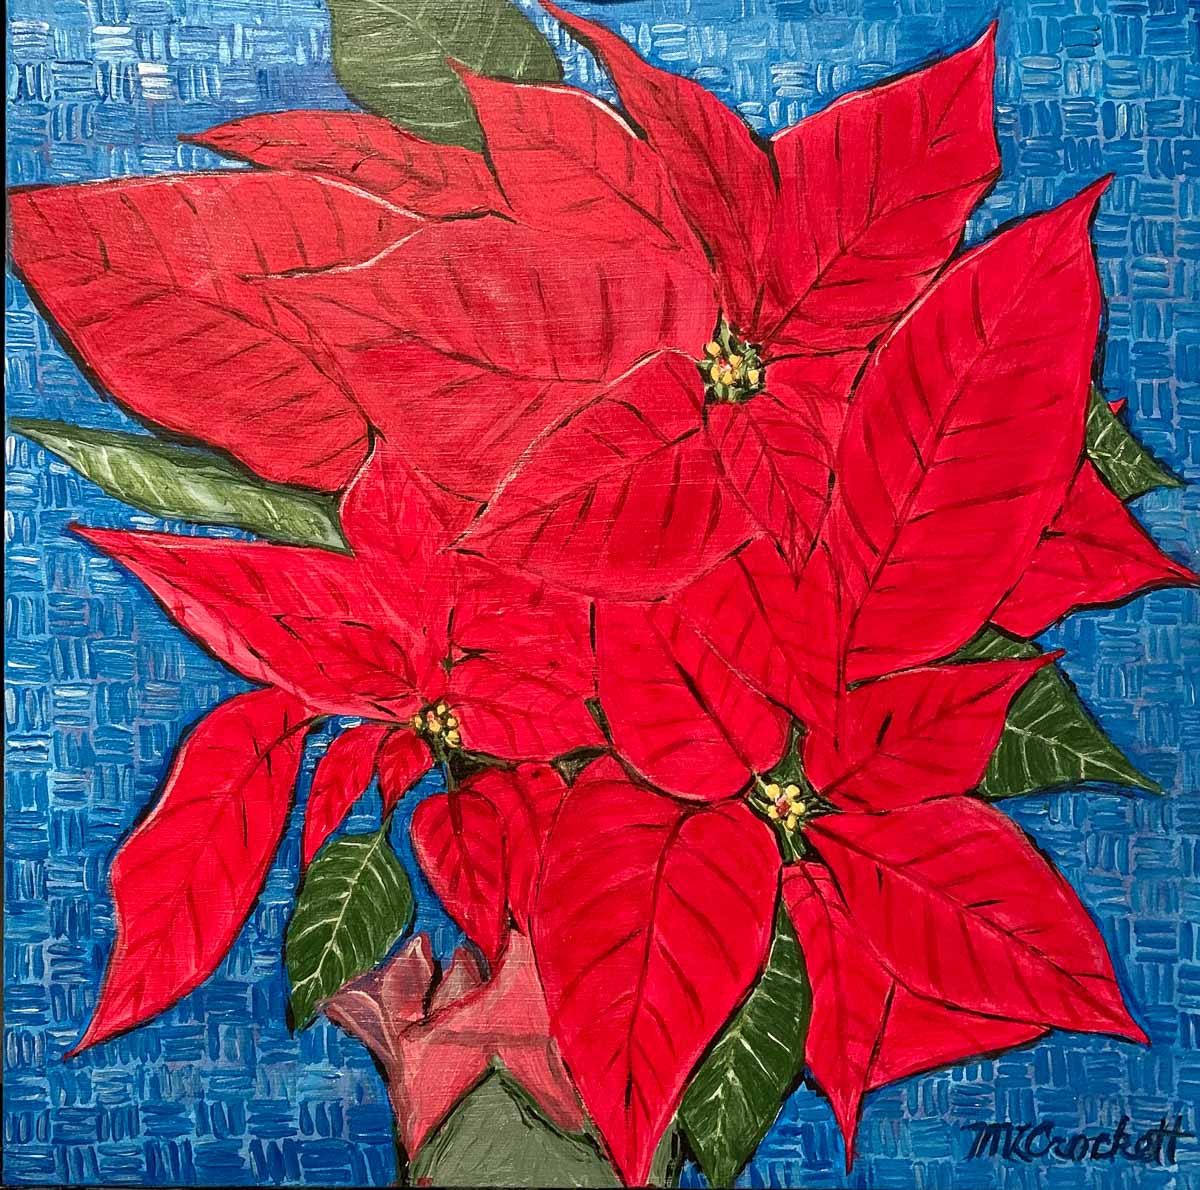 """Poinsettias"" by Megan Lee Crockett"